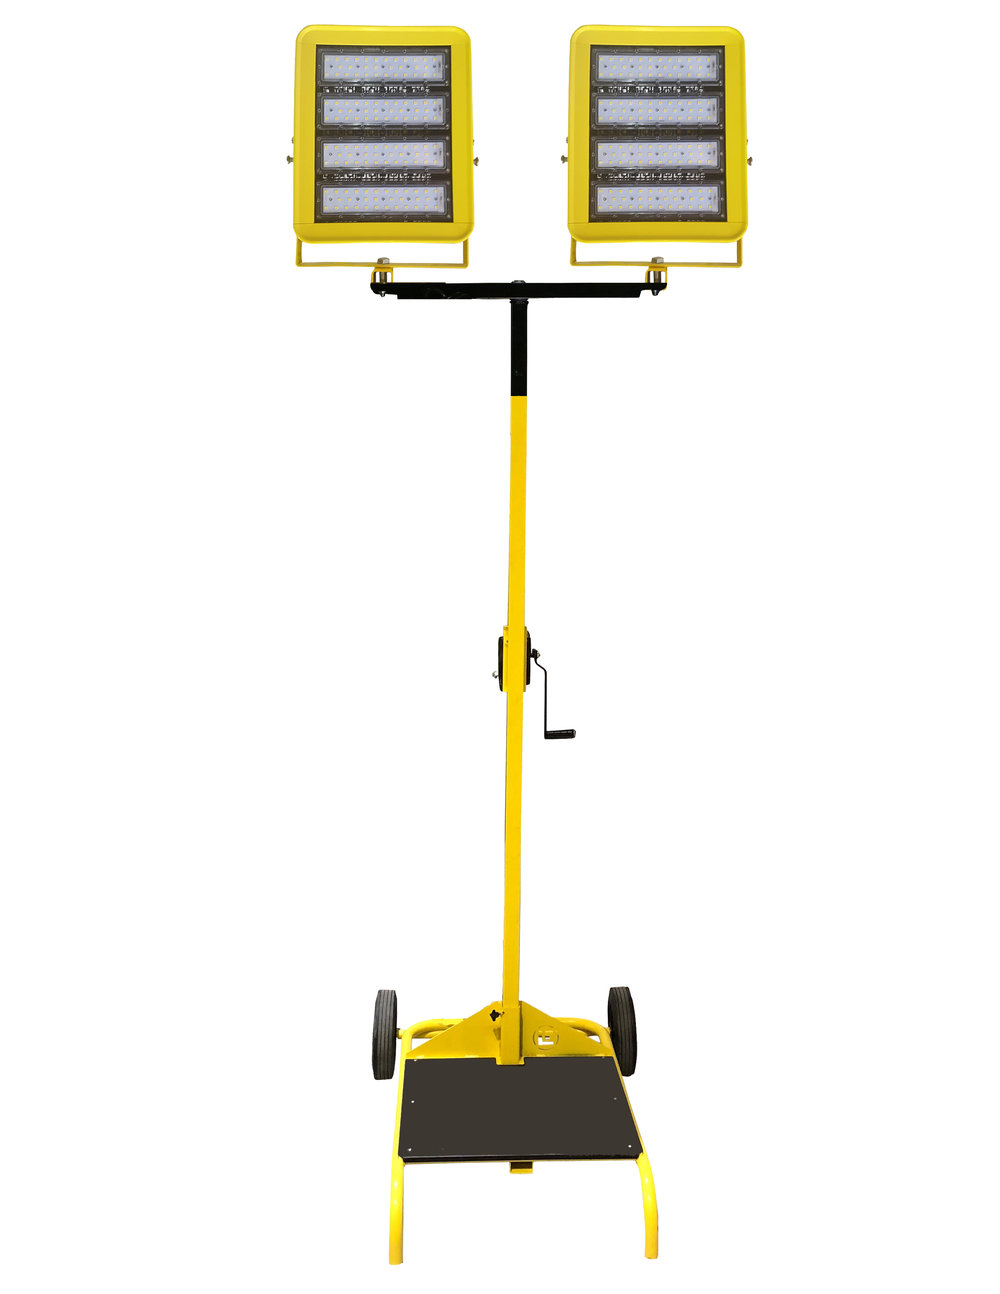 Beacon980 Wide Area LED Cart Light with winch and 12' mast height.  Same light output as 2 x 1000W metal halide lights.   Unit with one light head:   Cat Class: 110-1553  Part Number: LE980LED-CART-W   Unit with two light heads:   Cat Class: 110-1555  Part Number: LE980LED-CART-TD-W